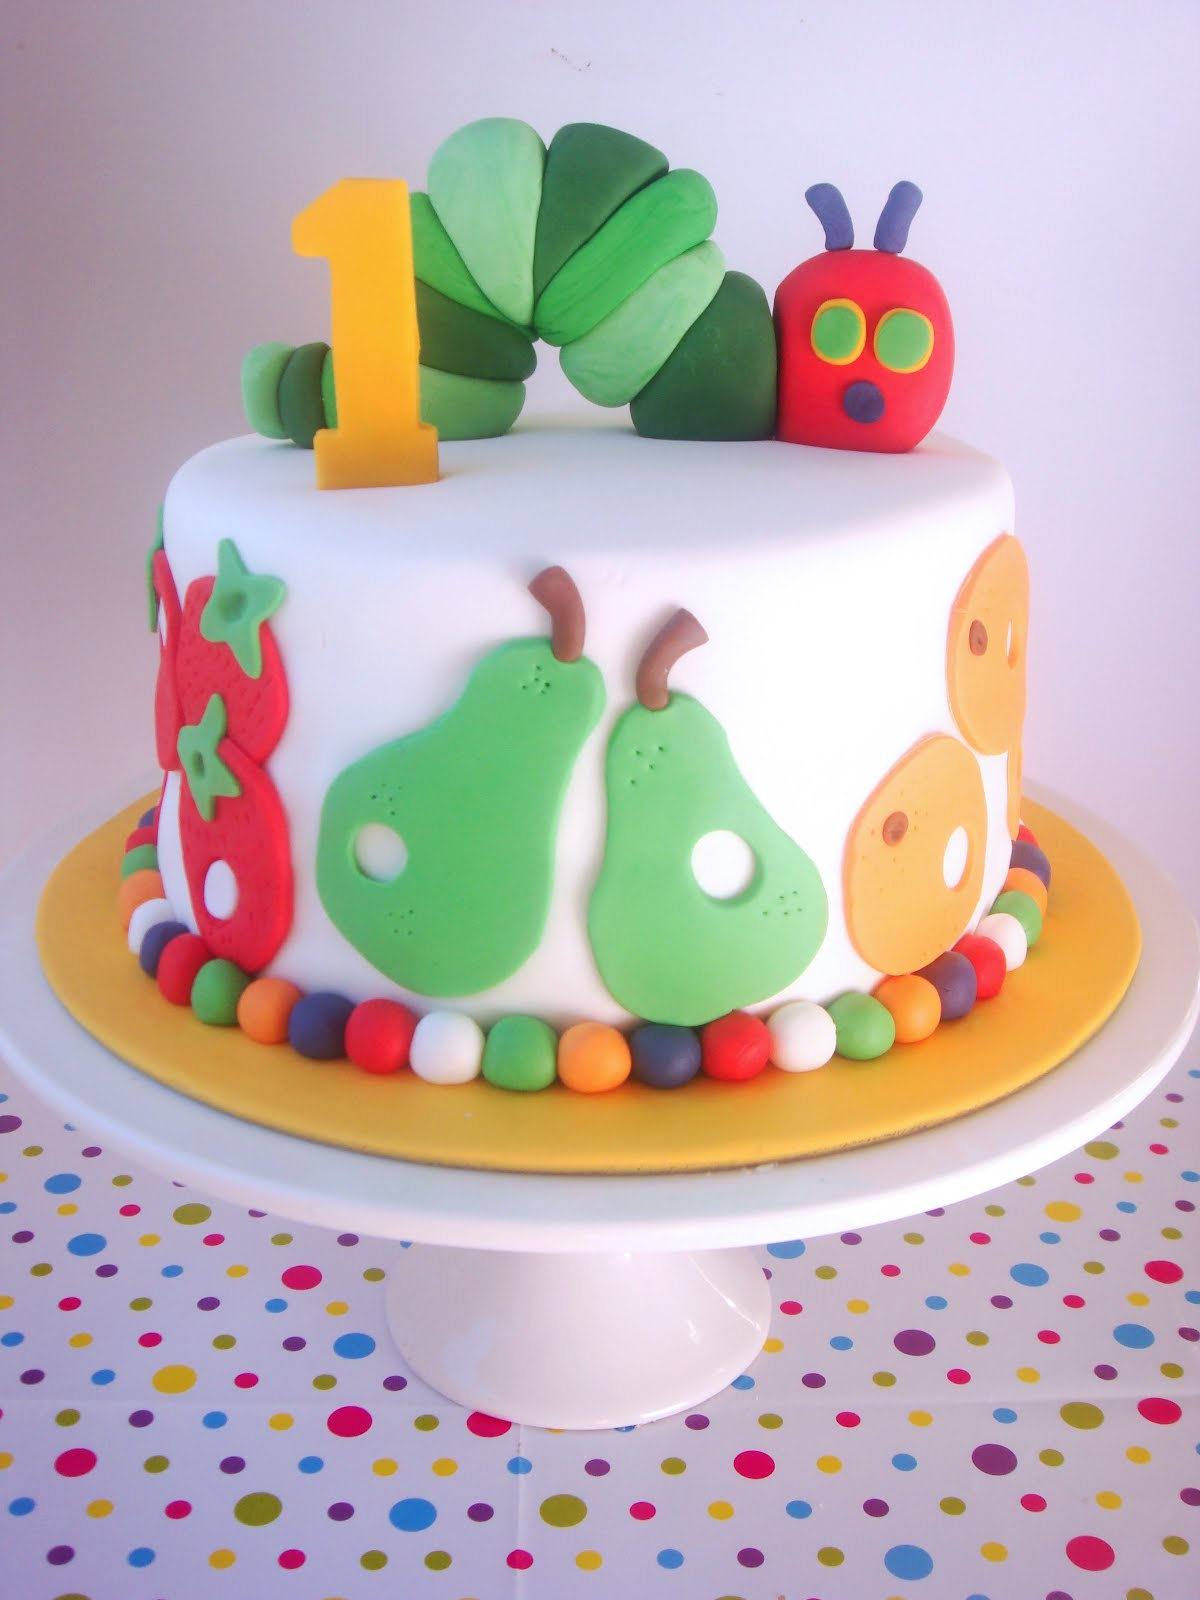 Butter hearts sugar very hungry caterpillar cake for 1st birthday cake decoration